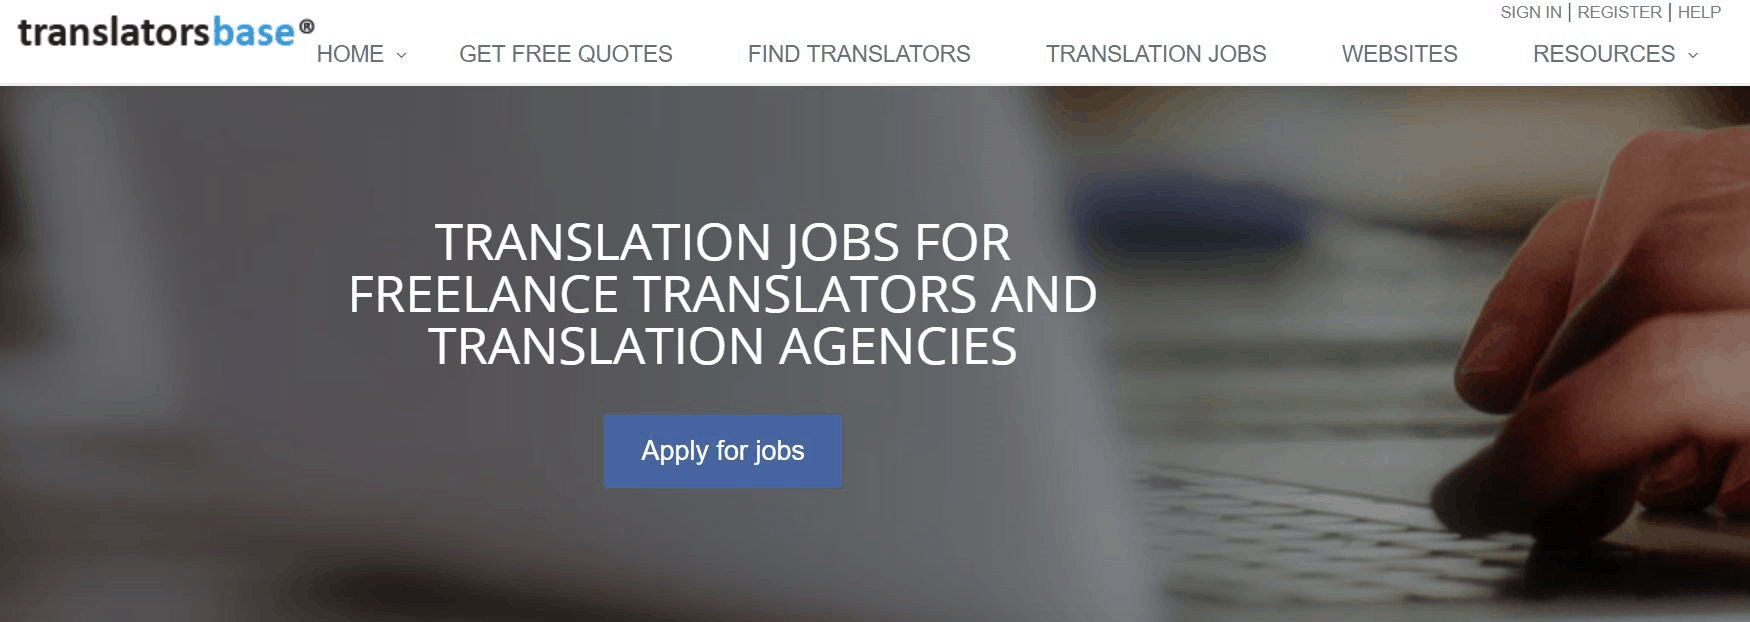 Translatorsbase translation job